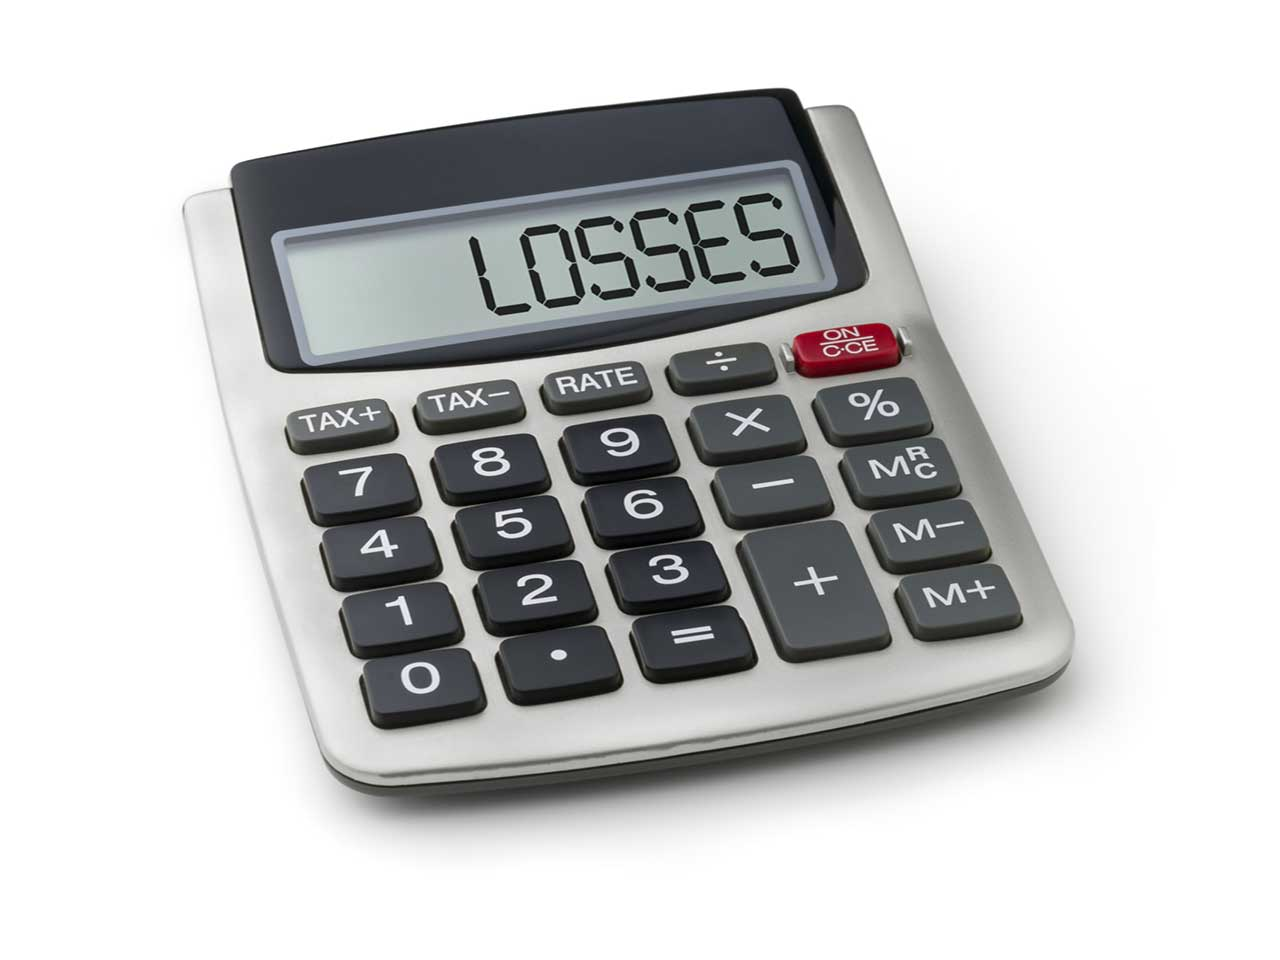 Calculator with losses